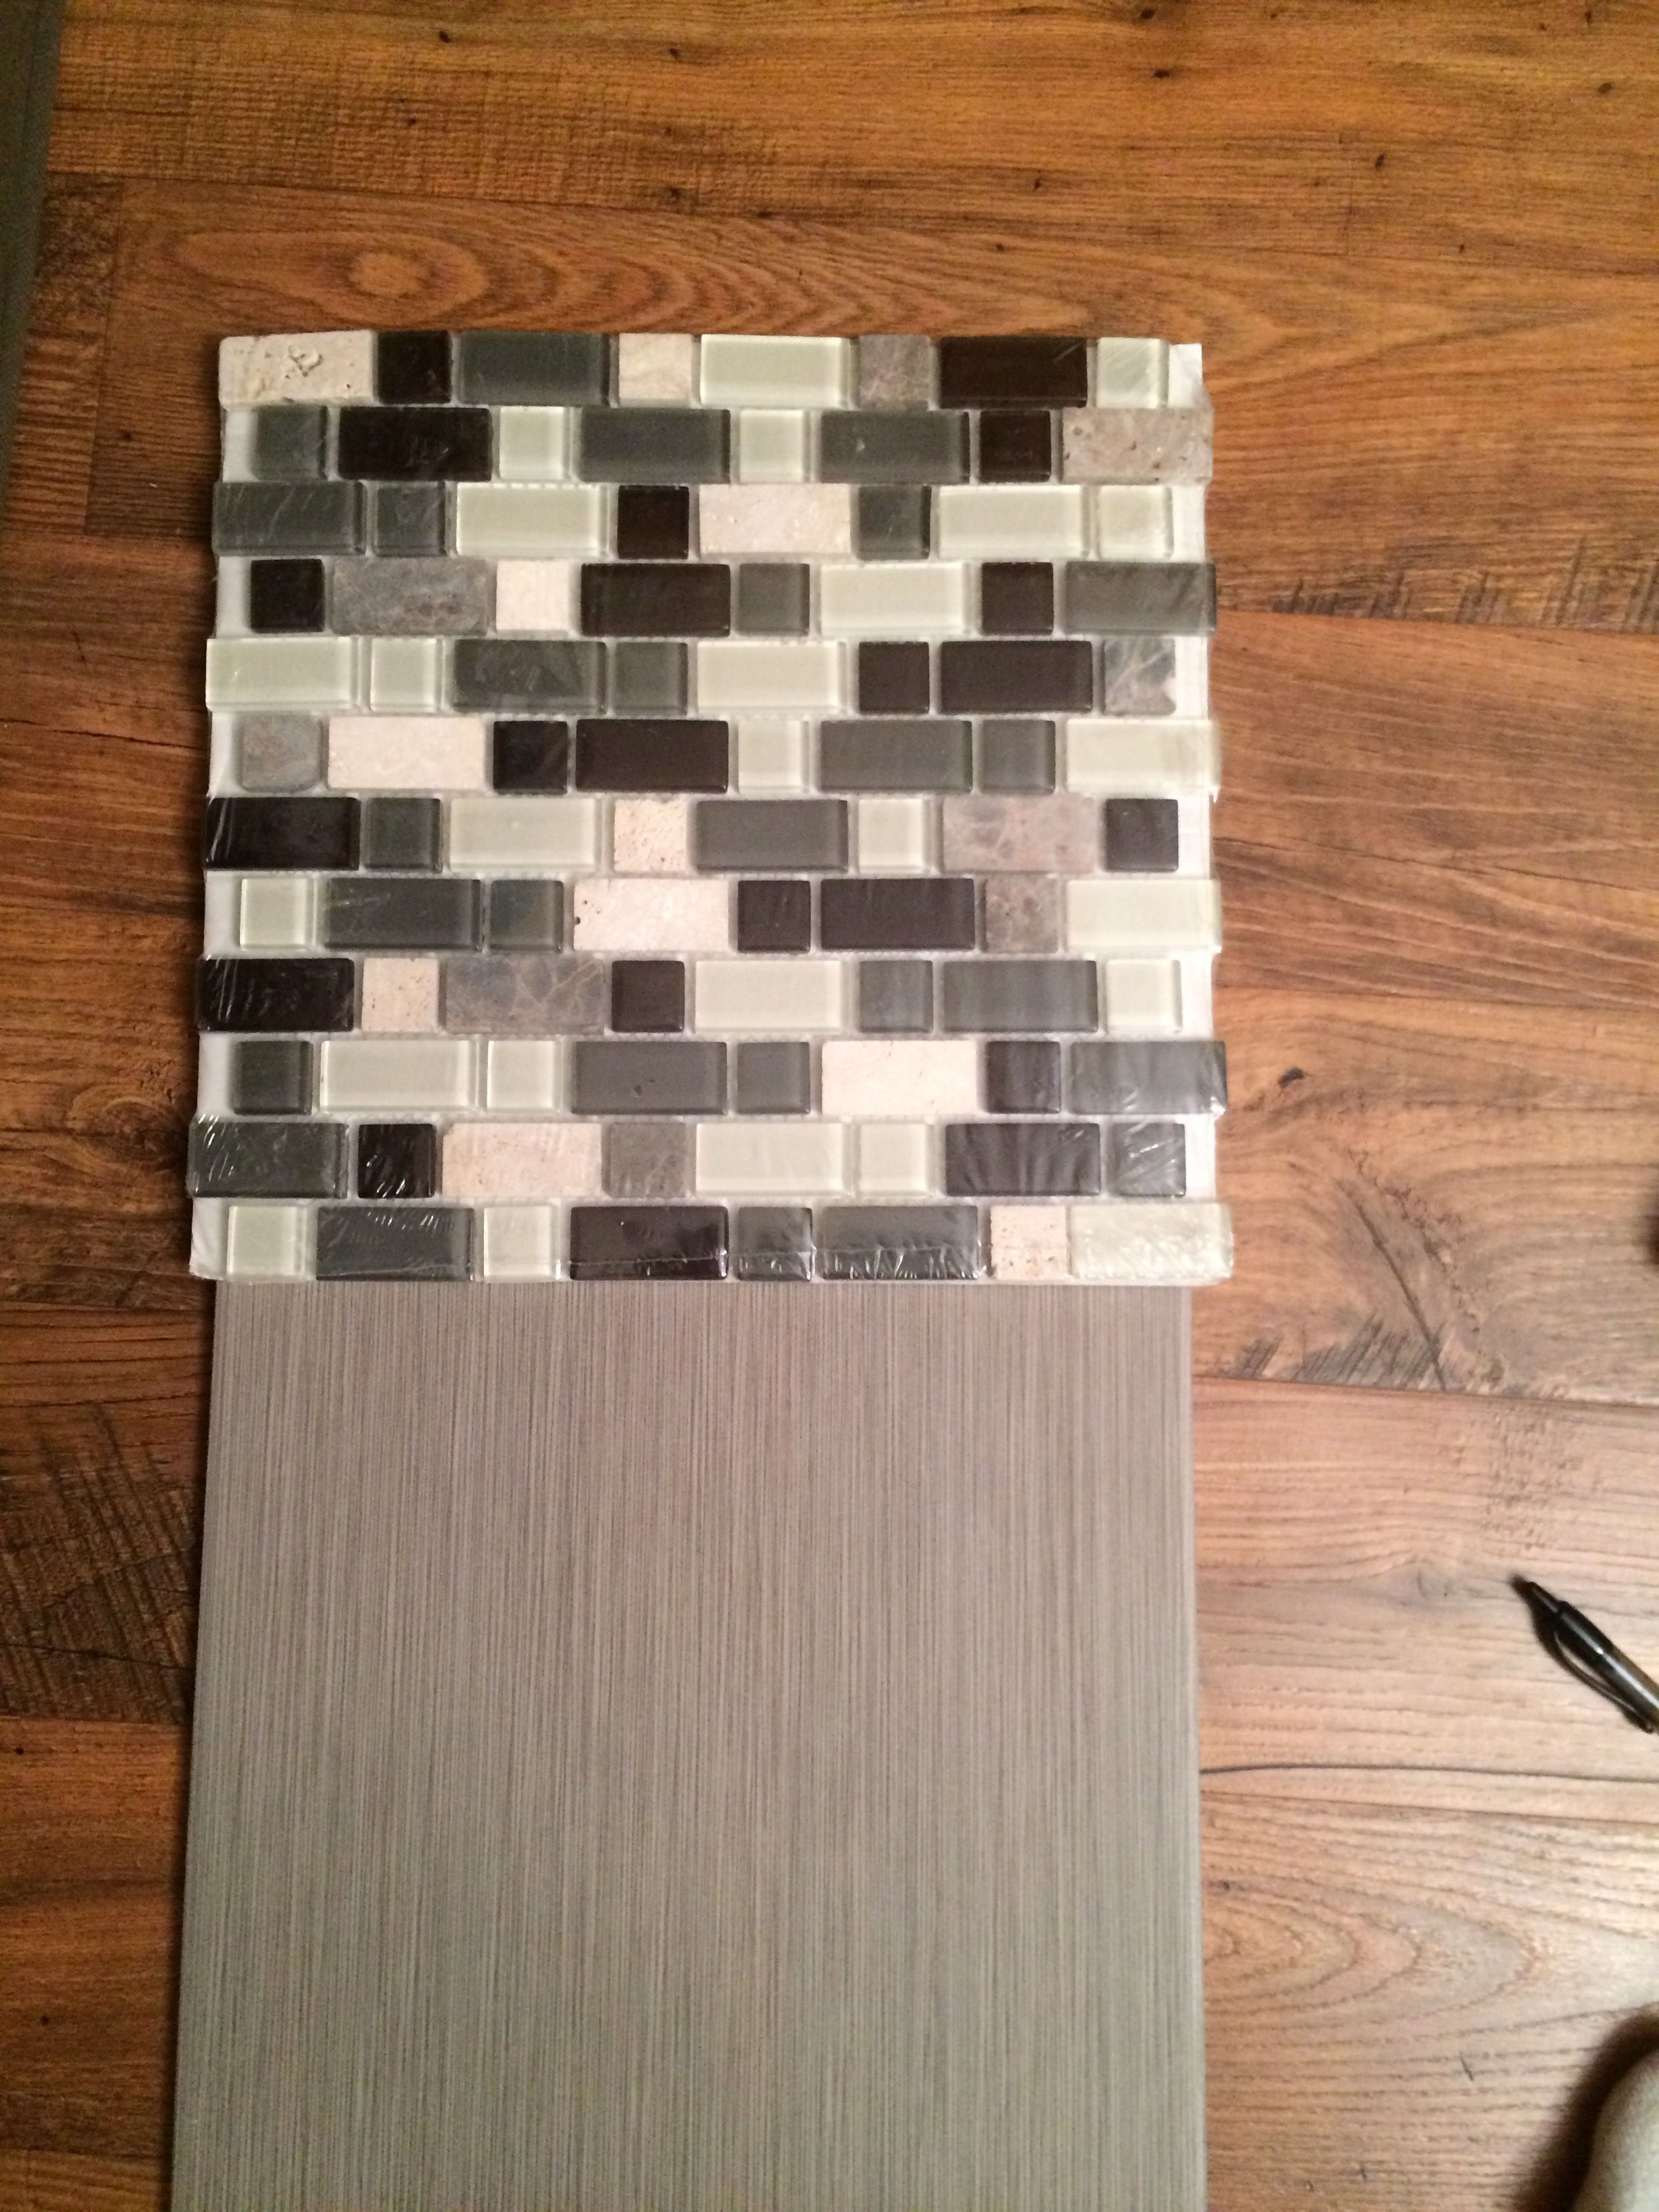 Lv Home Depot Metro Charcoal Tile With 495 Mosaic New House